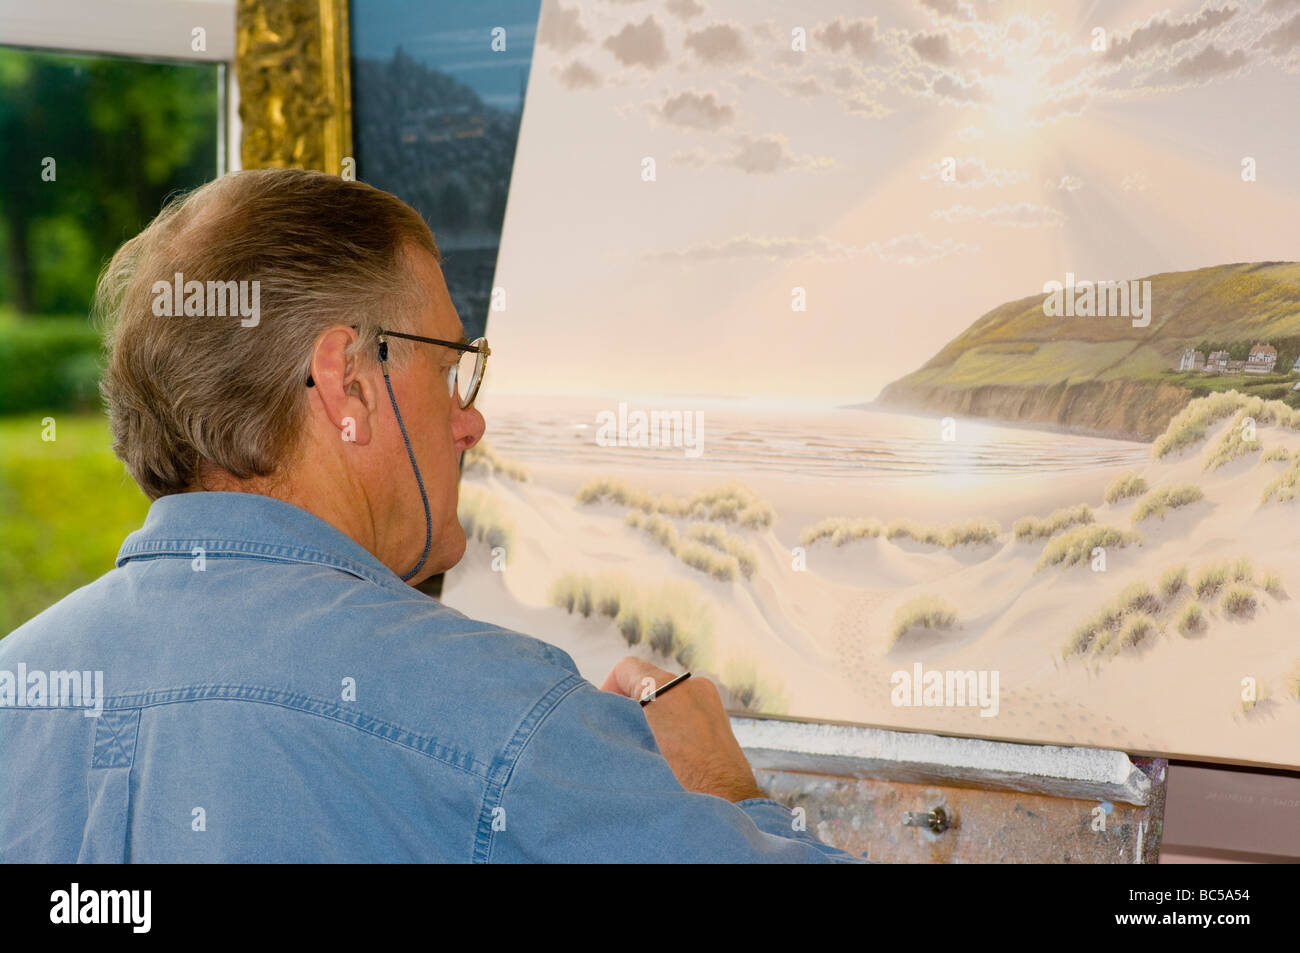 Artist Painting A Scene In His Studio - Stock Image